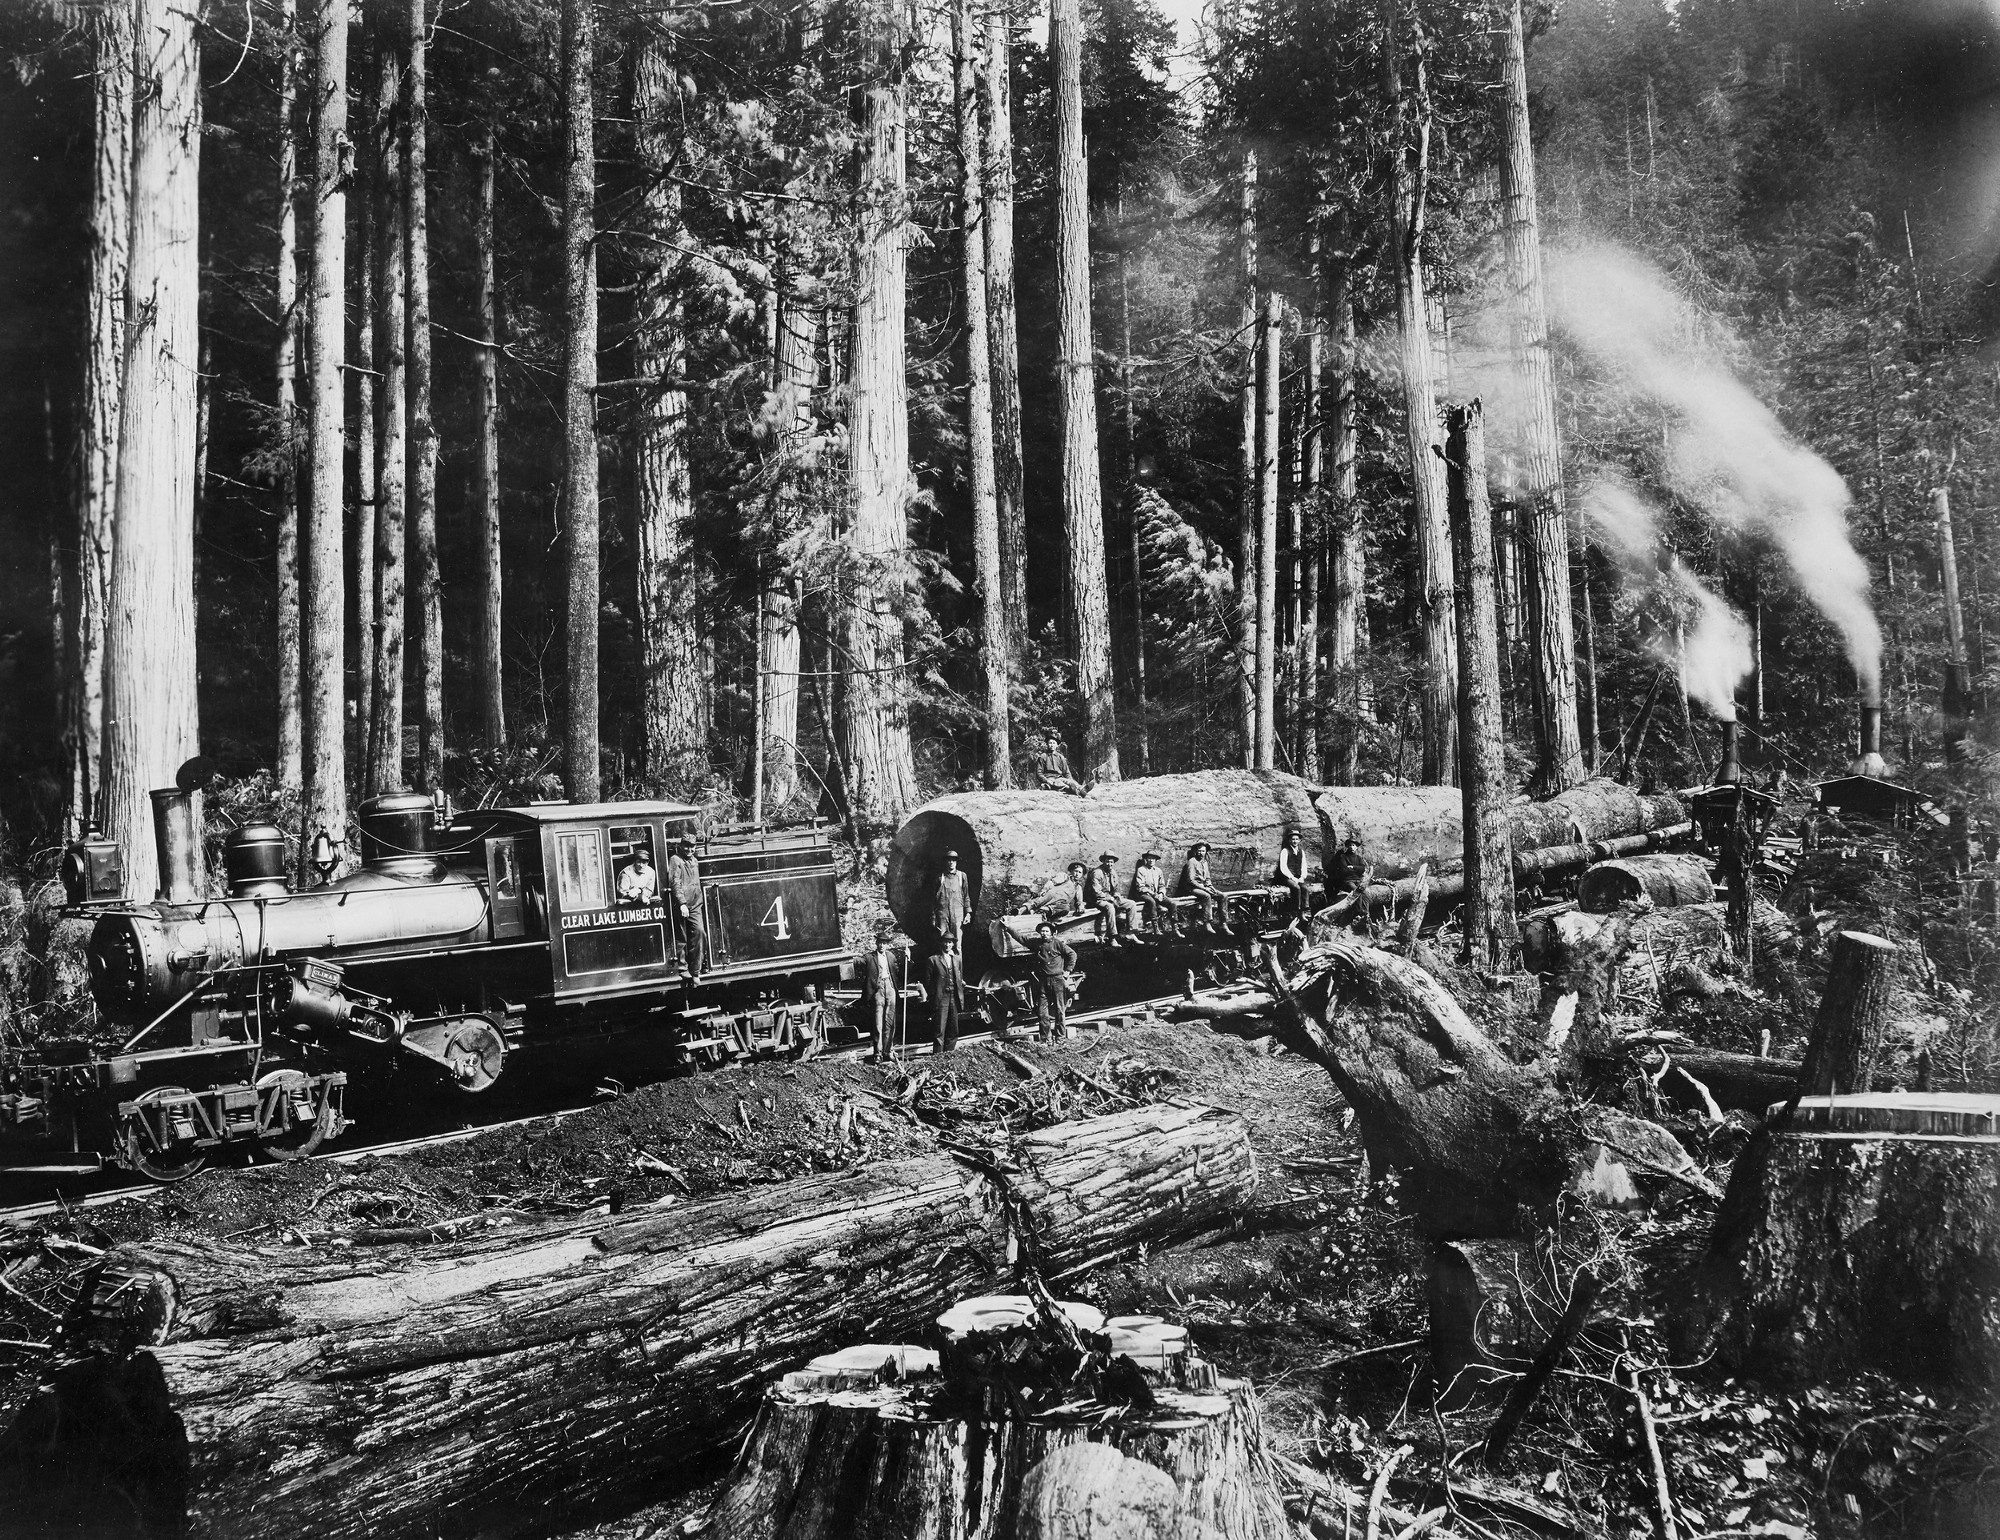 Sawn Timbers Supply In Washington State ~ Early logging photos show the taming — and tarnishing of